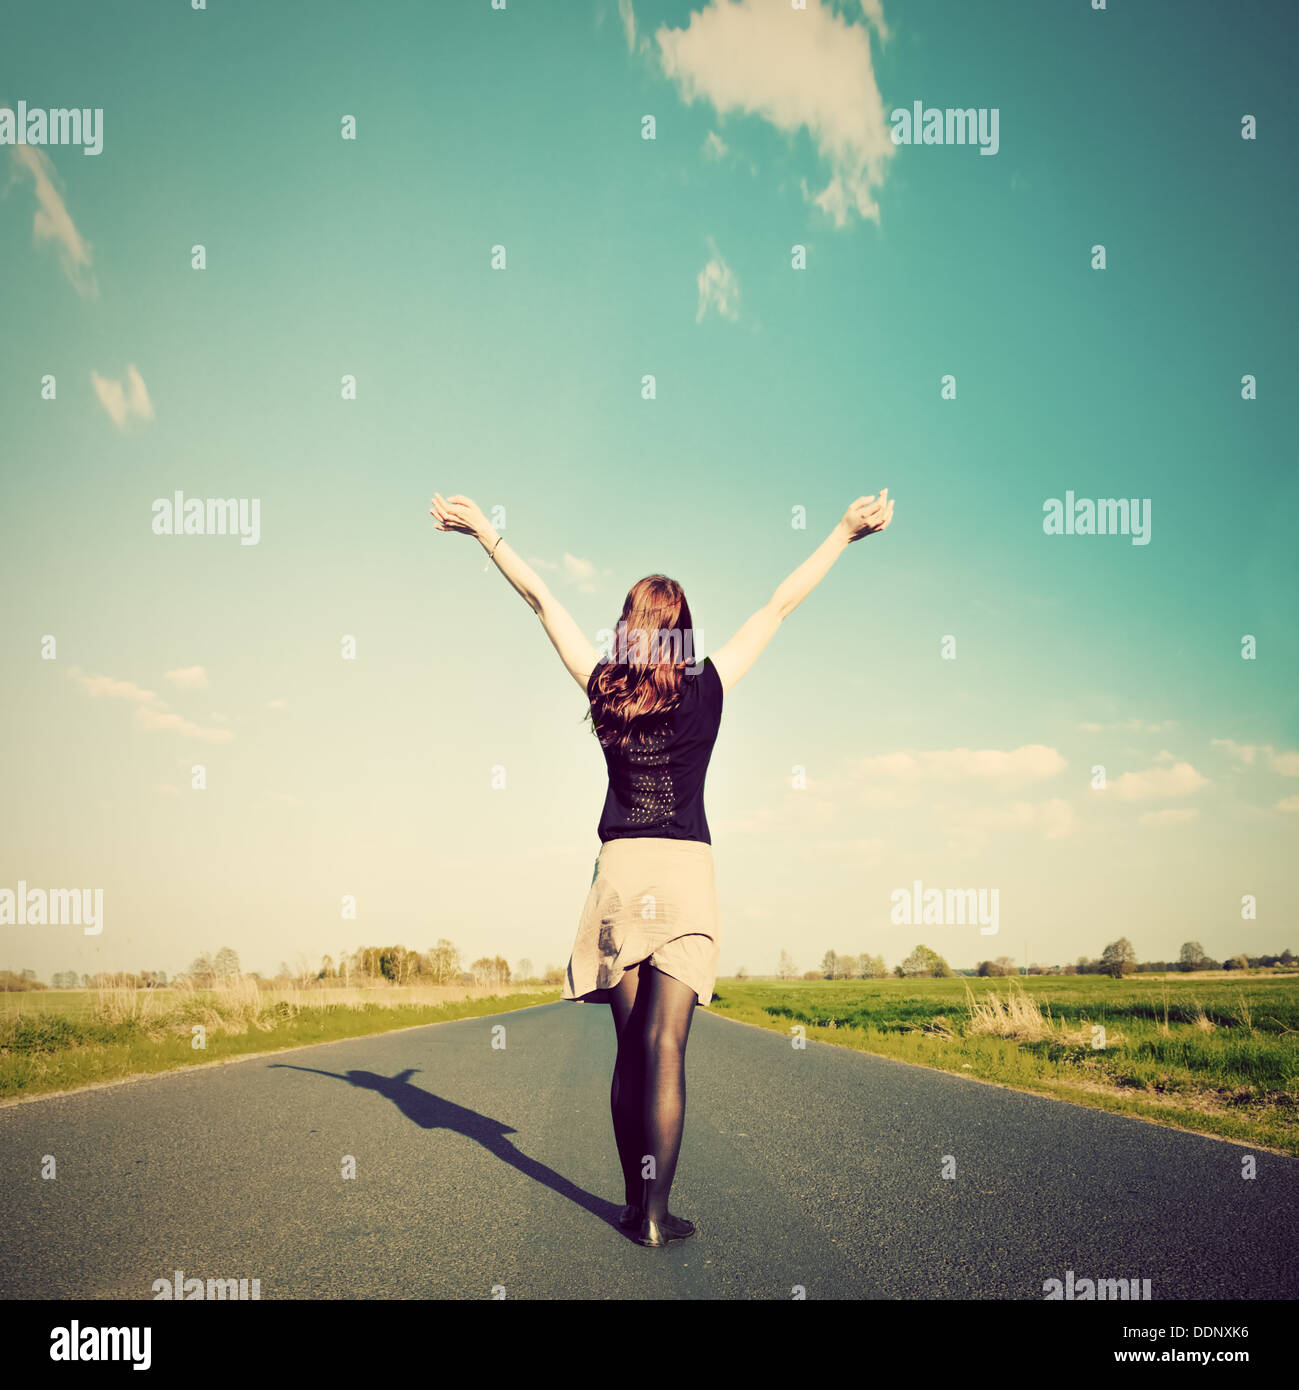 Happy woman standing with hands up on straight road facing sun. Future / freedom / hope / success concept - Stock Image